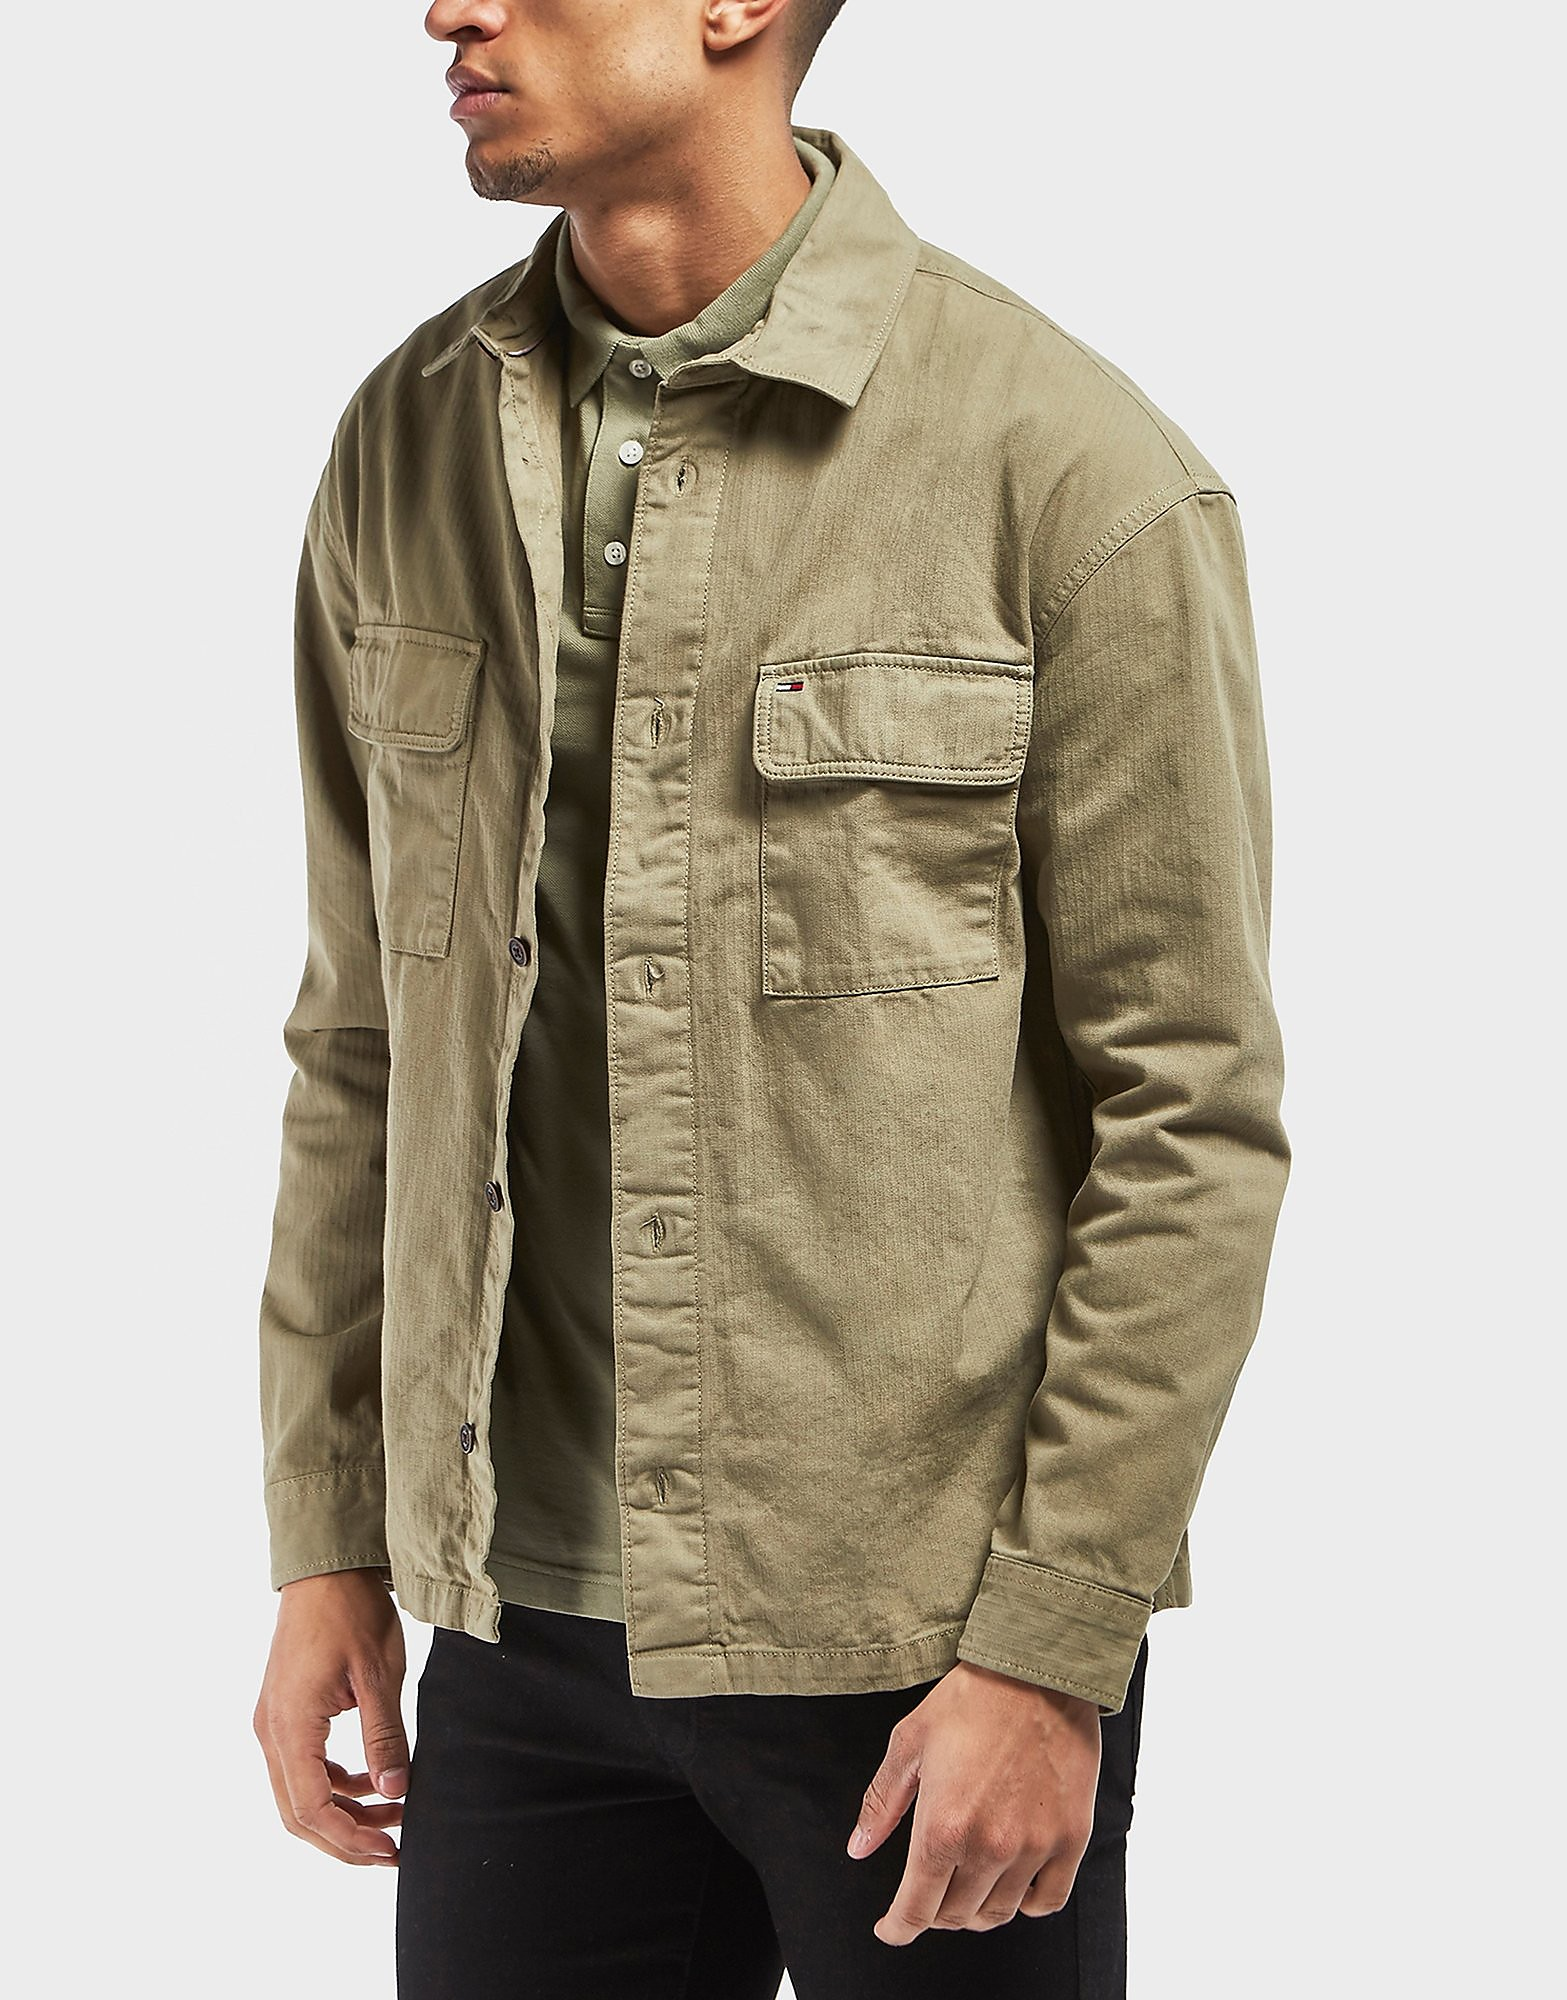 Tommy Hilfiger Workwear Overshirt